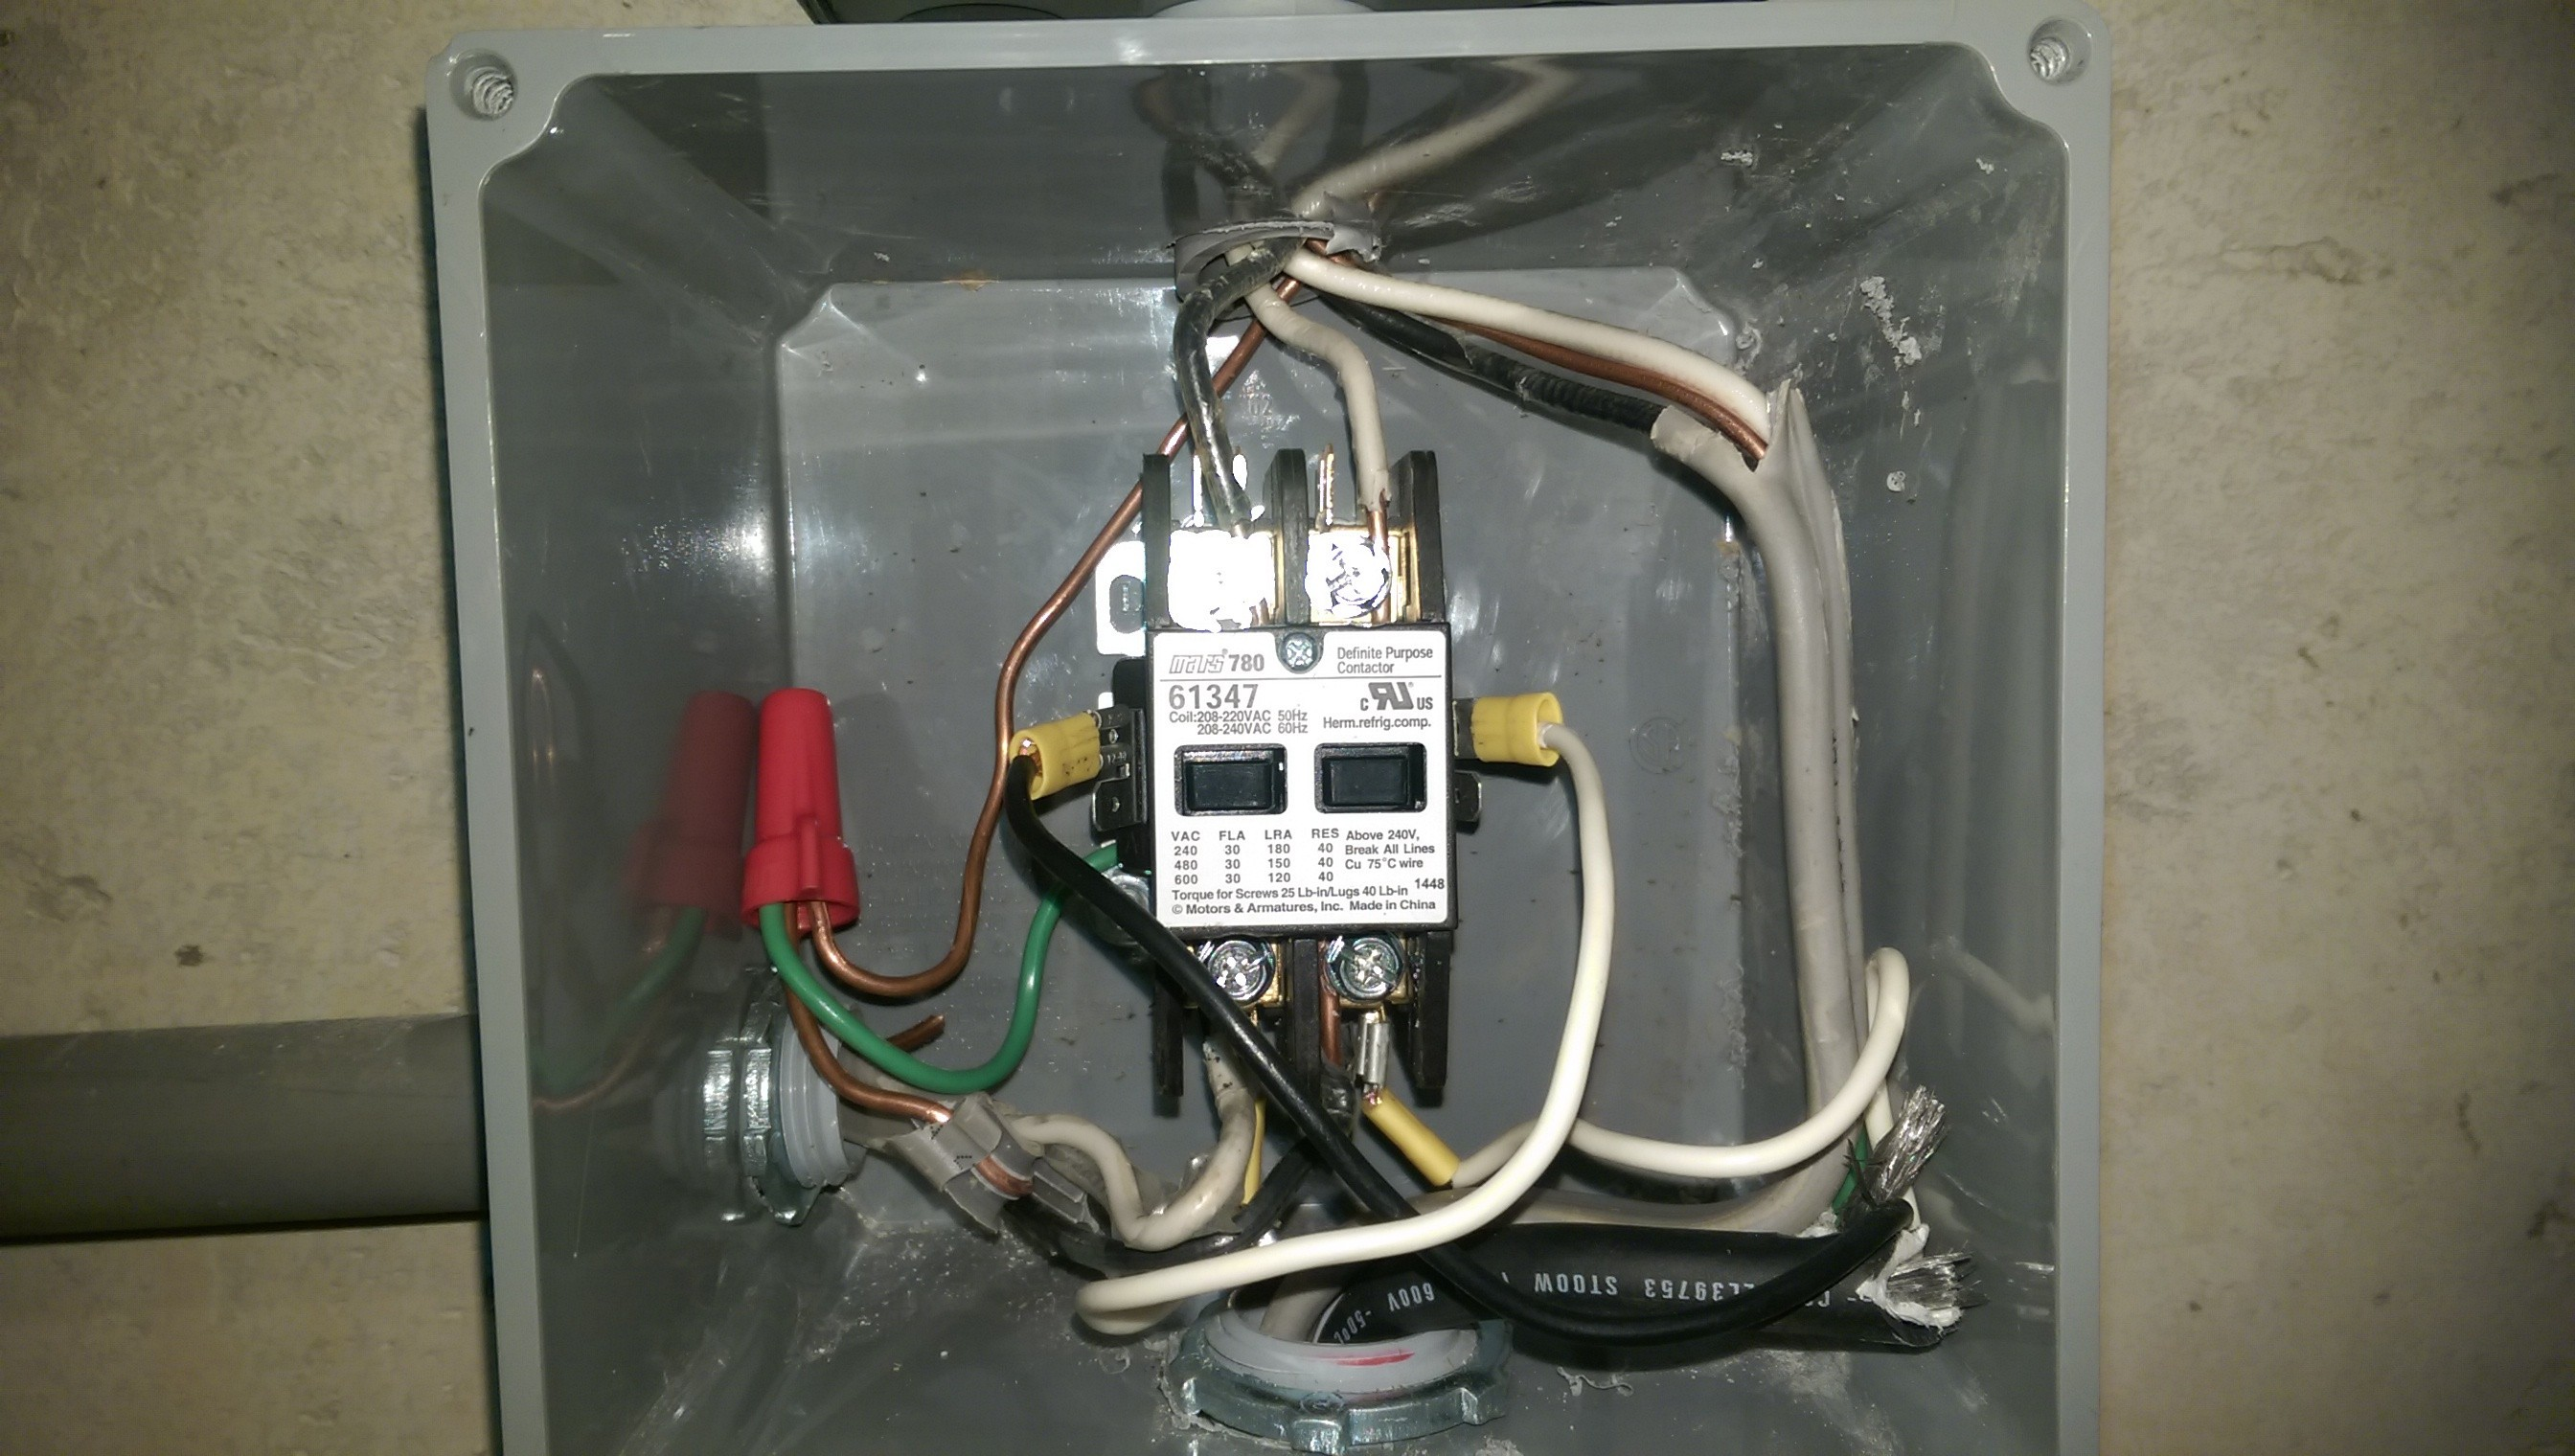 WT_9412] Wiring A Contactor Switch Free DiagramGram Botse Itis Viewor Mohammedshrine Librar Wiring 101